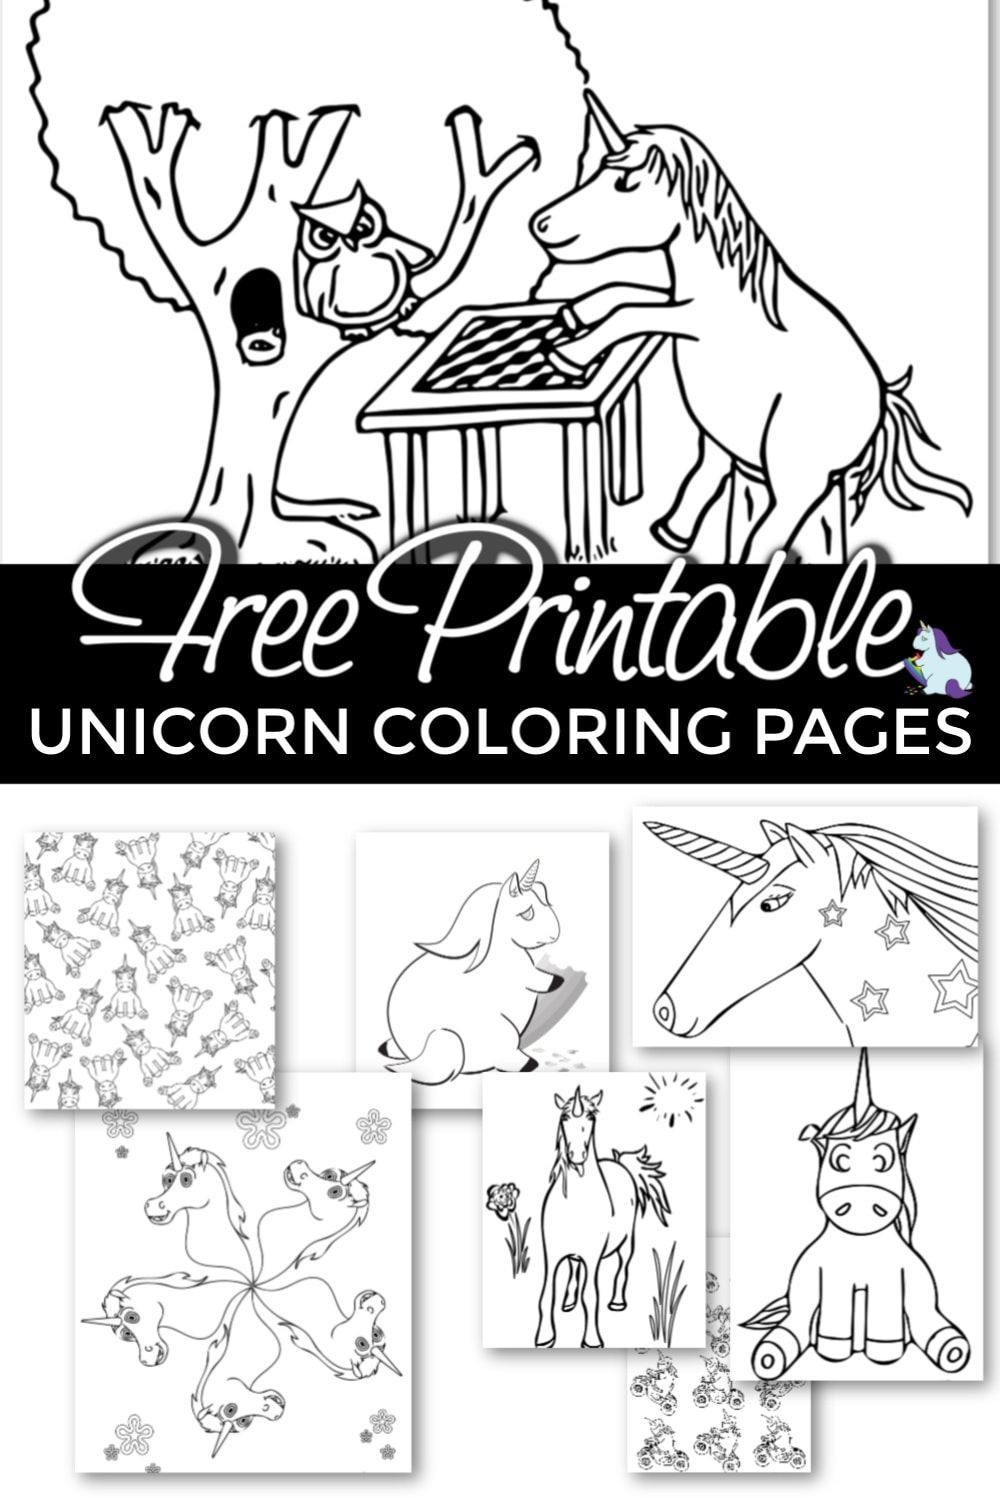 Free Printable Unicorn Coloring Pages Super Cute And Unique Unicorn